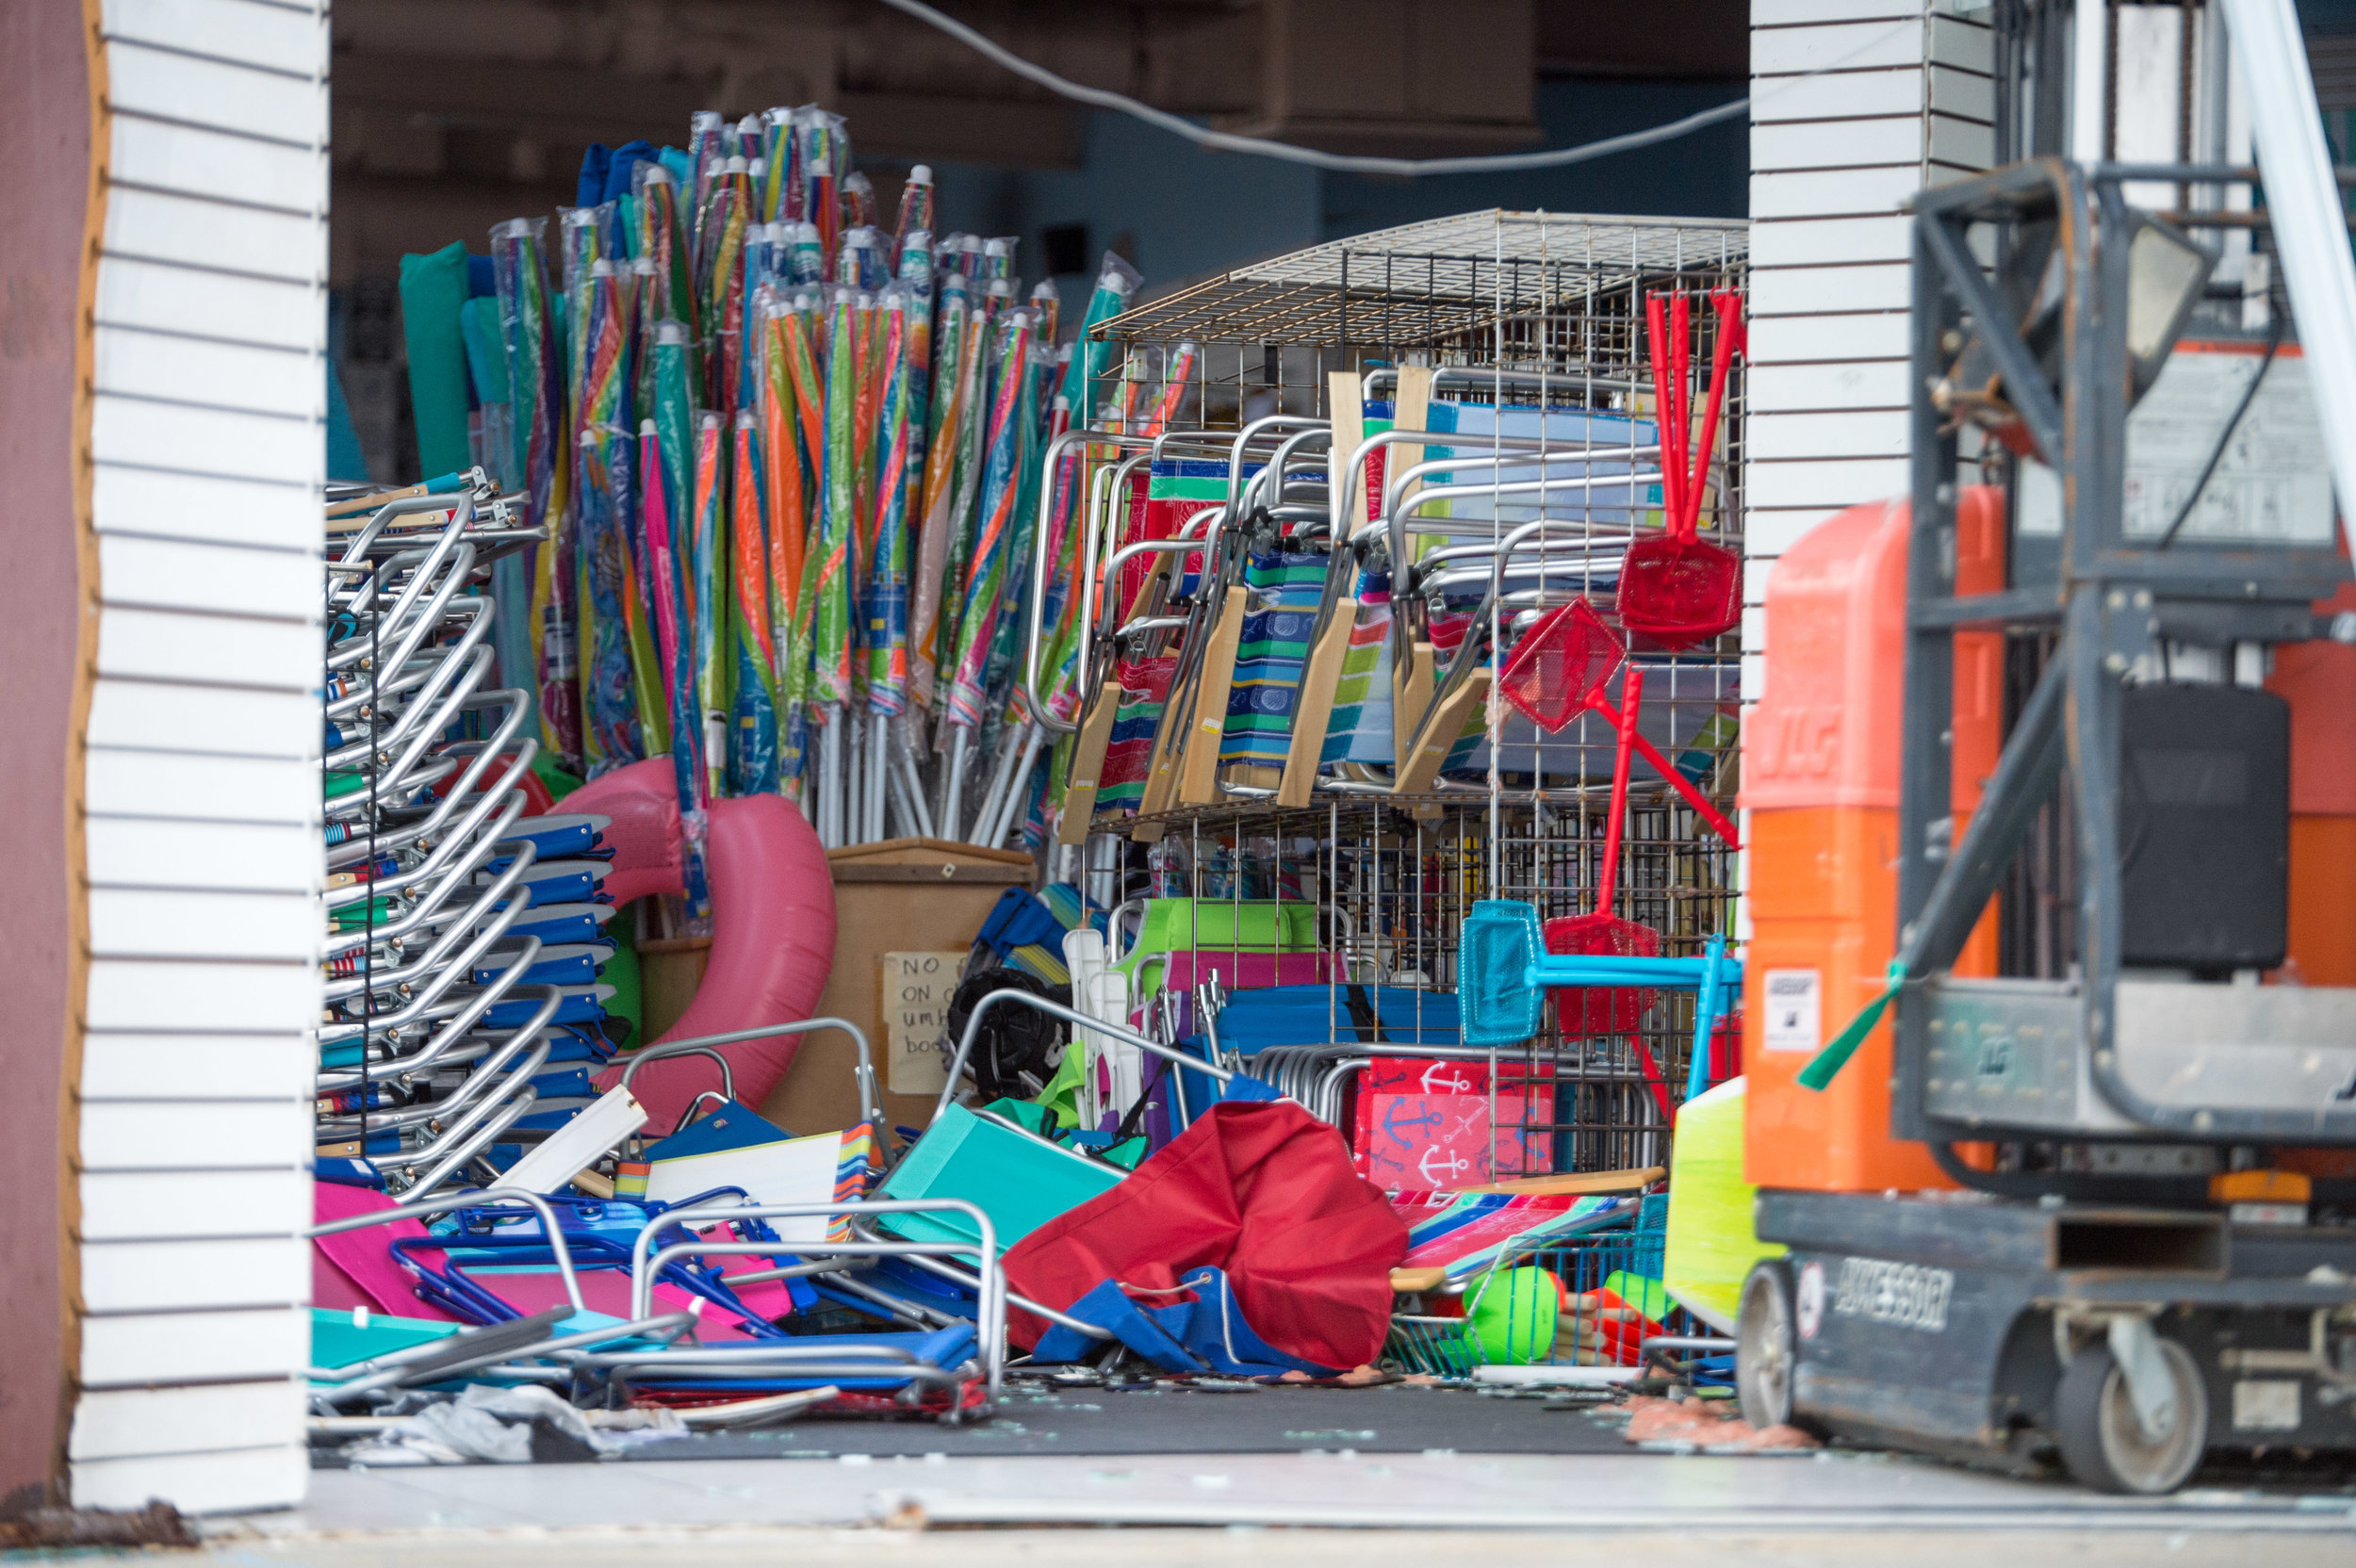 September 16, 2018, Atlantic Beach, NC- Pacific beach store is heavily damaged in the wake of Hurricane Florence.